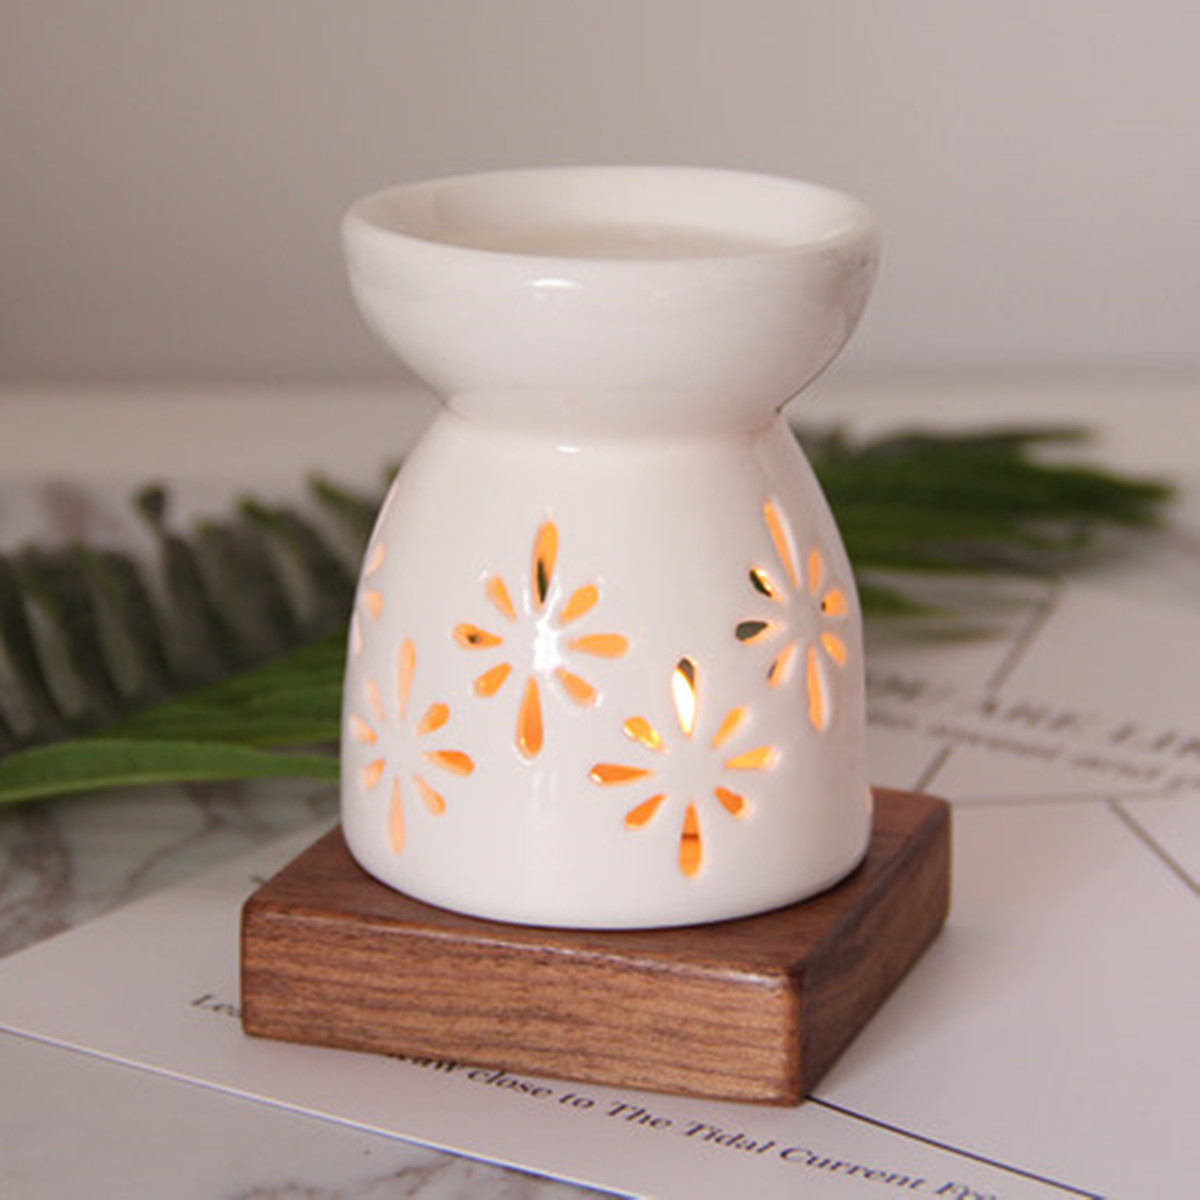 Fragrance Lamp Aromatherapy Diffuser Scent Candle Holder Spa